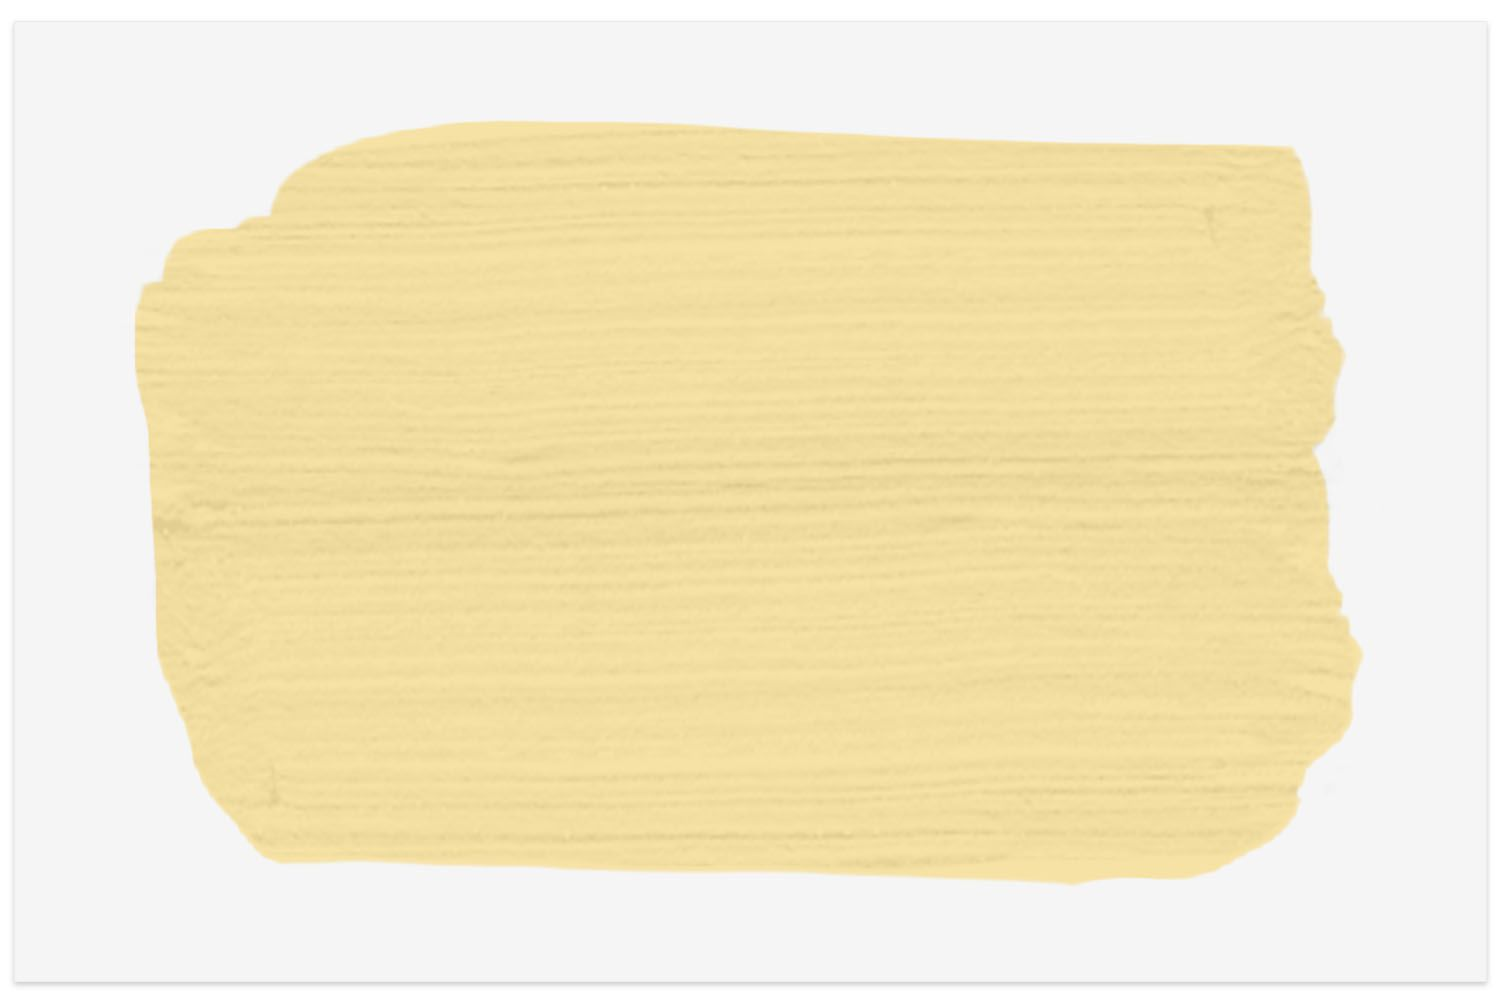 spruce-paint-color-swatch-benjamin-moore-hawthorne-yellow-65761110e0554553b68afb012c77ebf2.jpg